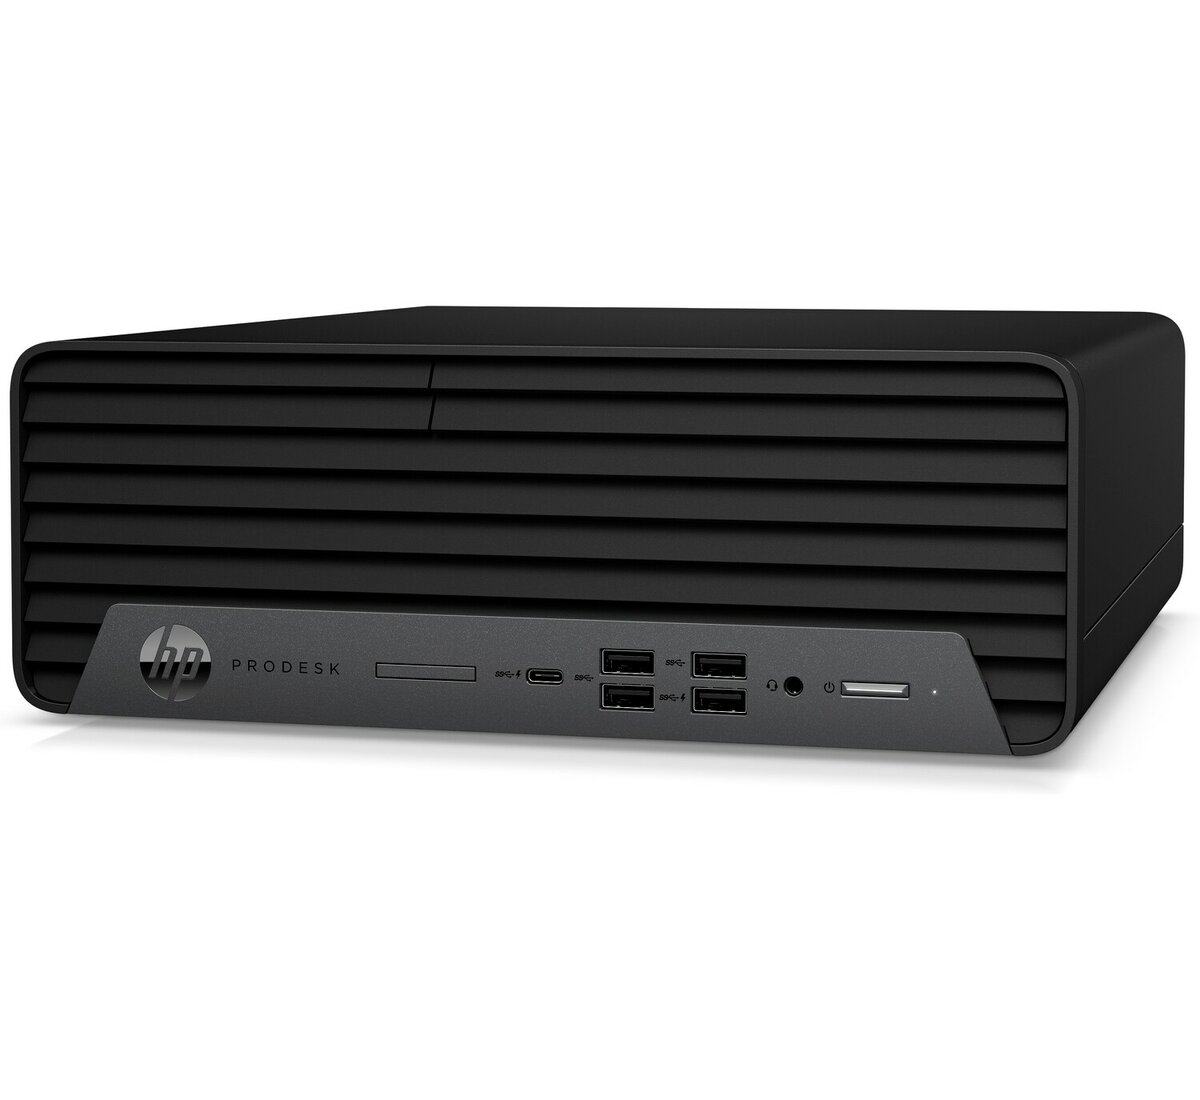 slide 3 of 3,zoom in, hp prodesk 600 g6 small form factor pc